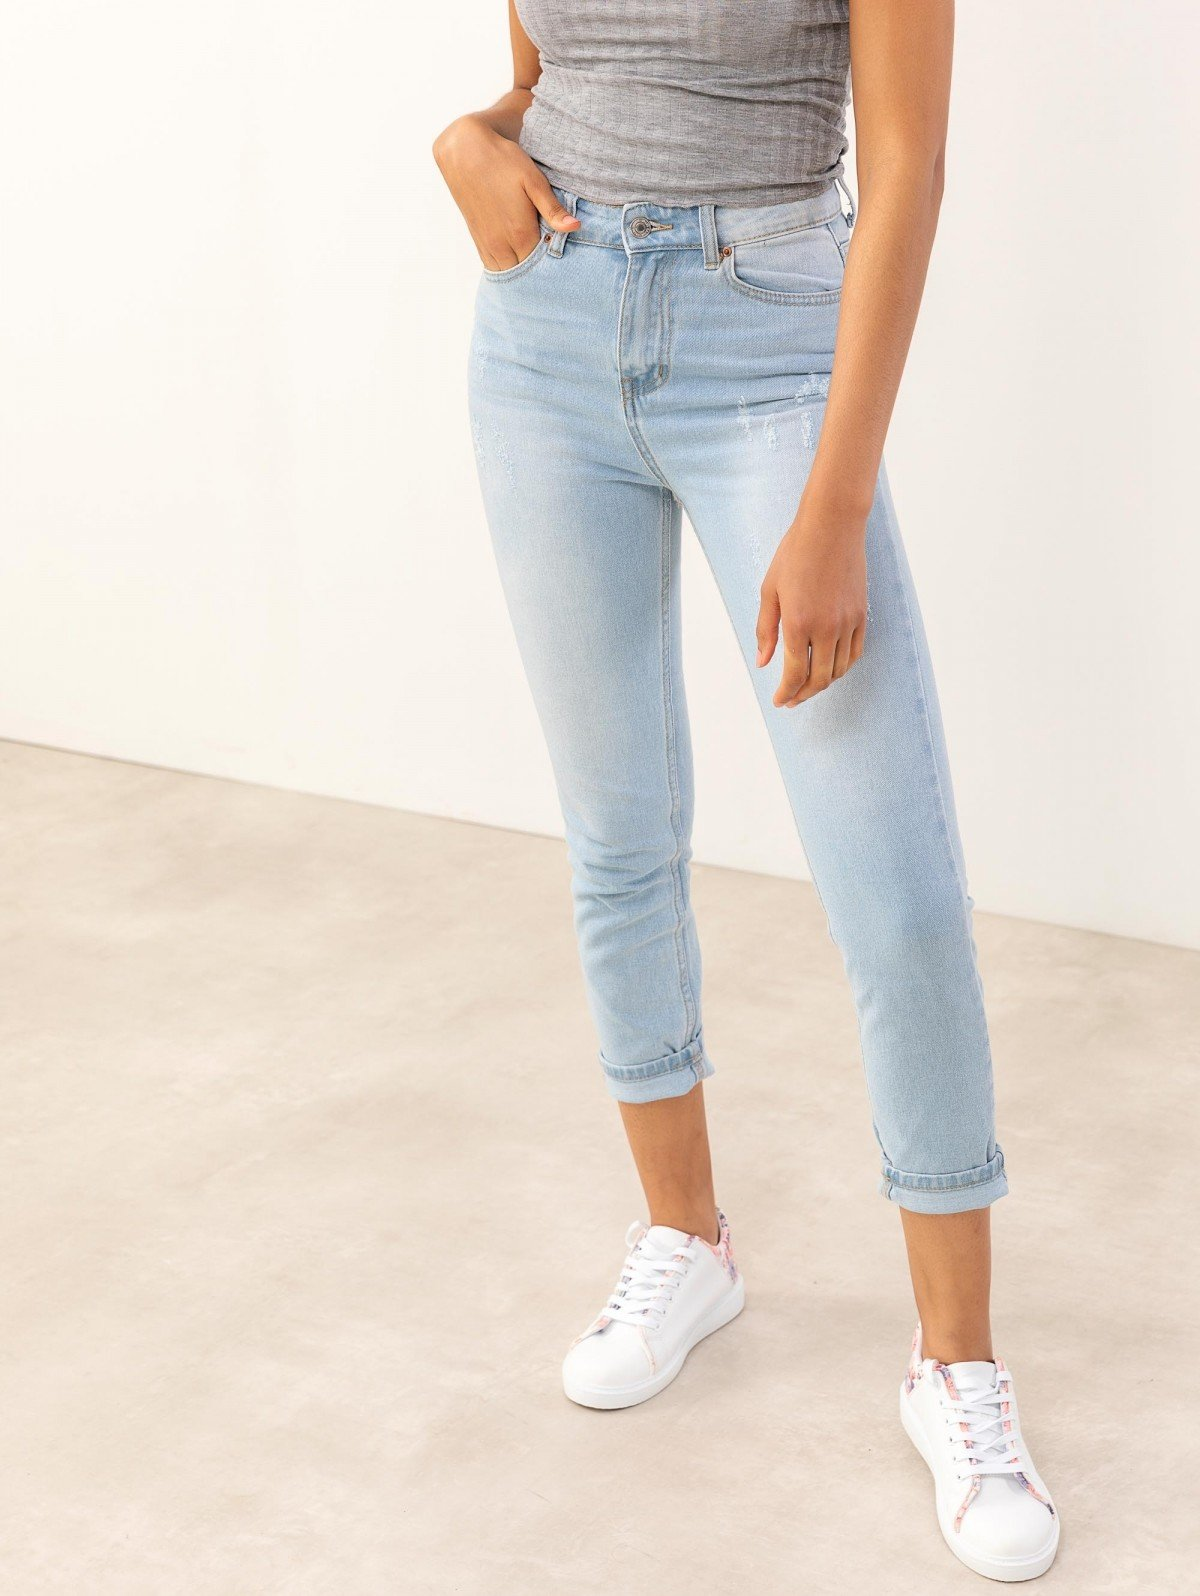 https://www.thefashionproject.gr/images/photos/mom-high-jeans-me-fthores-66040-a7xa.jpg